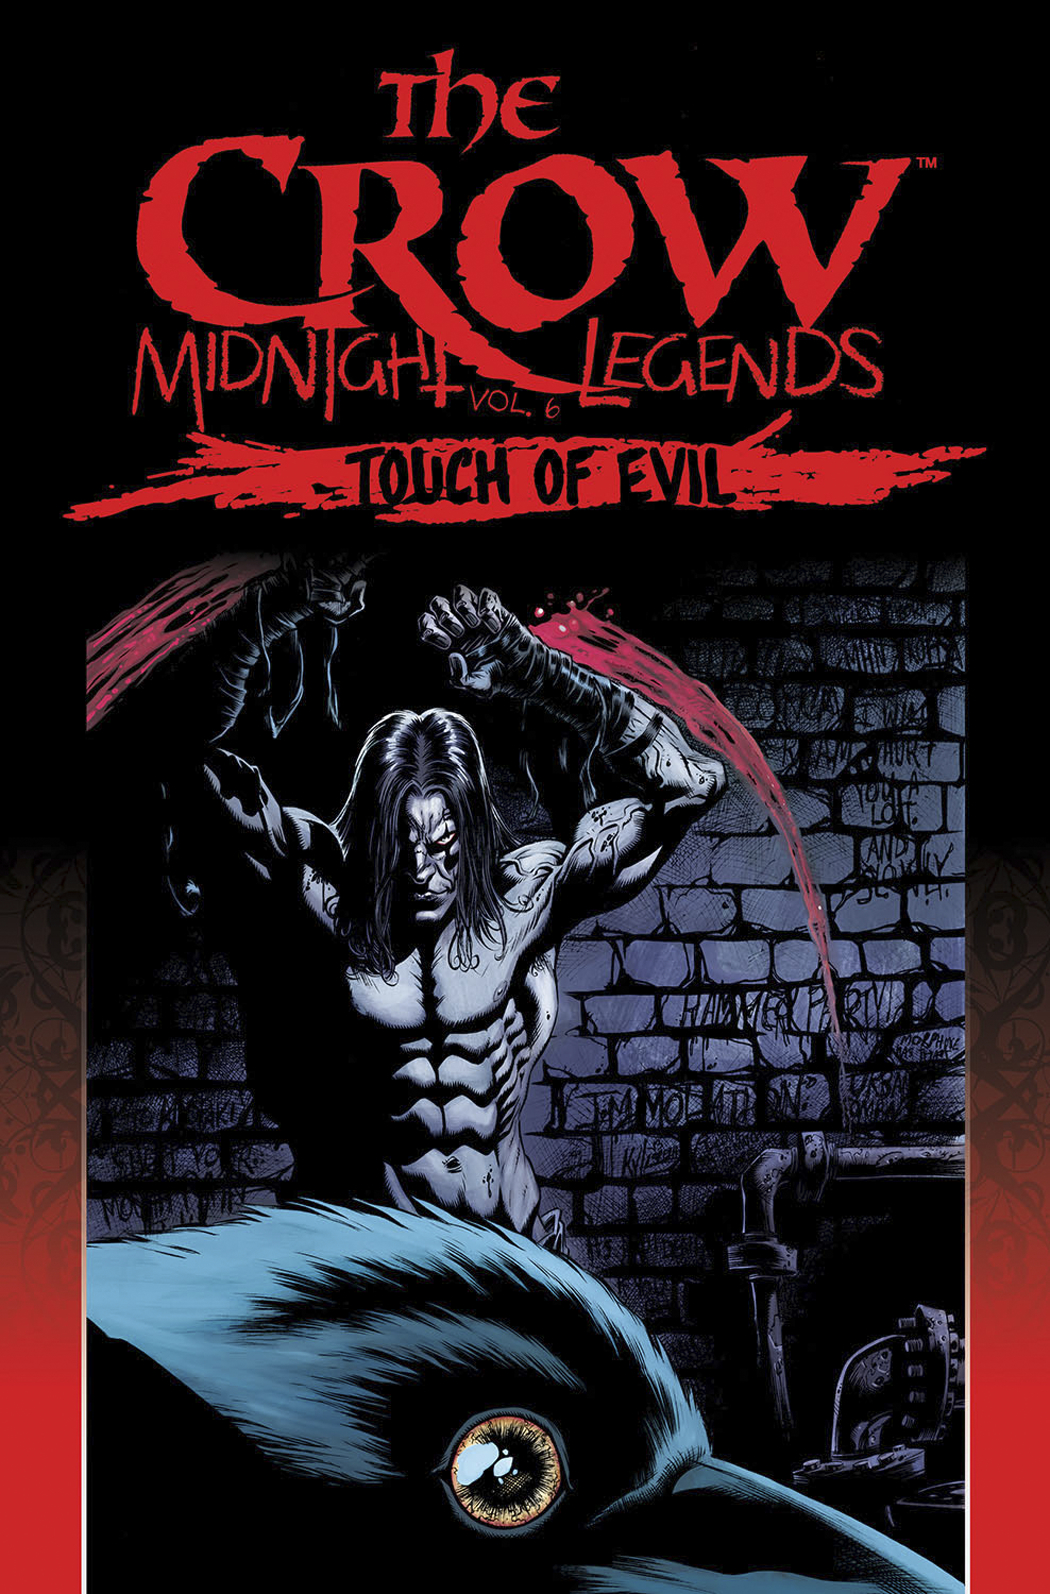 CROW MIDNIGHT LEGENDS TP VOL 06 TOUCH OF EVIL